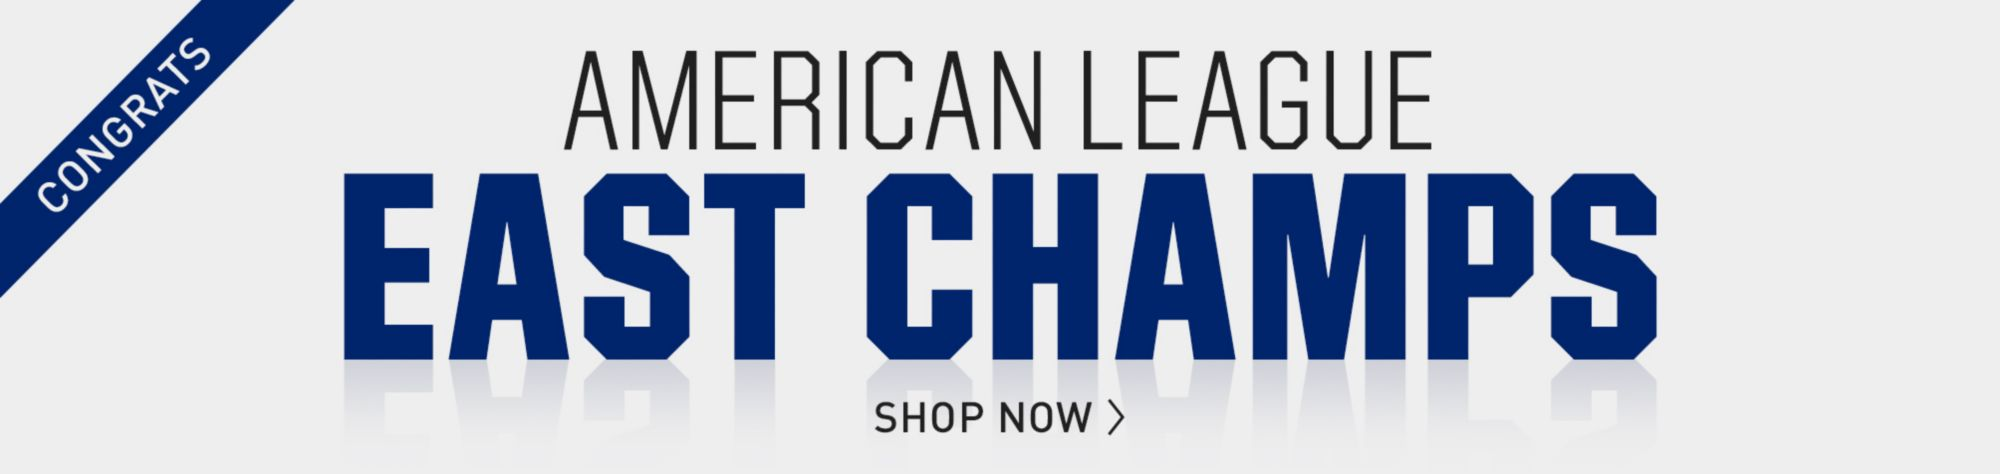 Congrats American League East Champs Shop Now